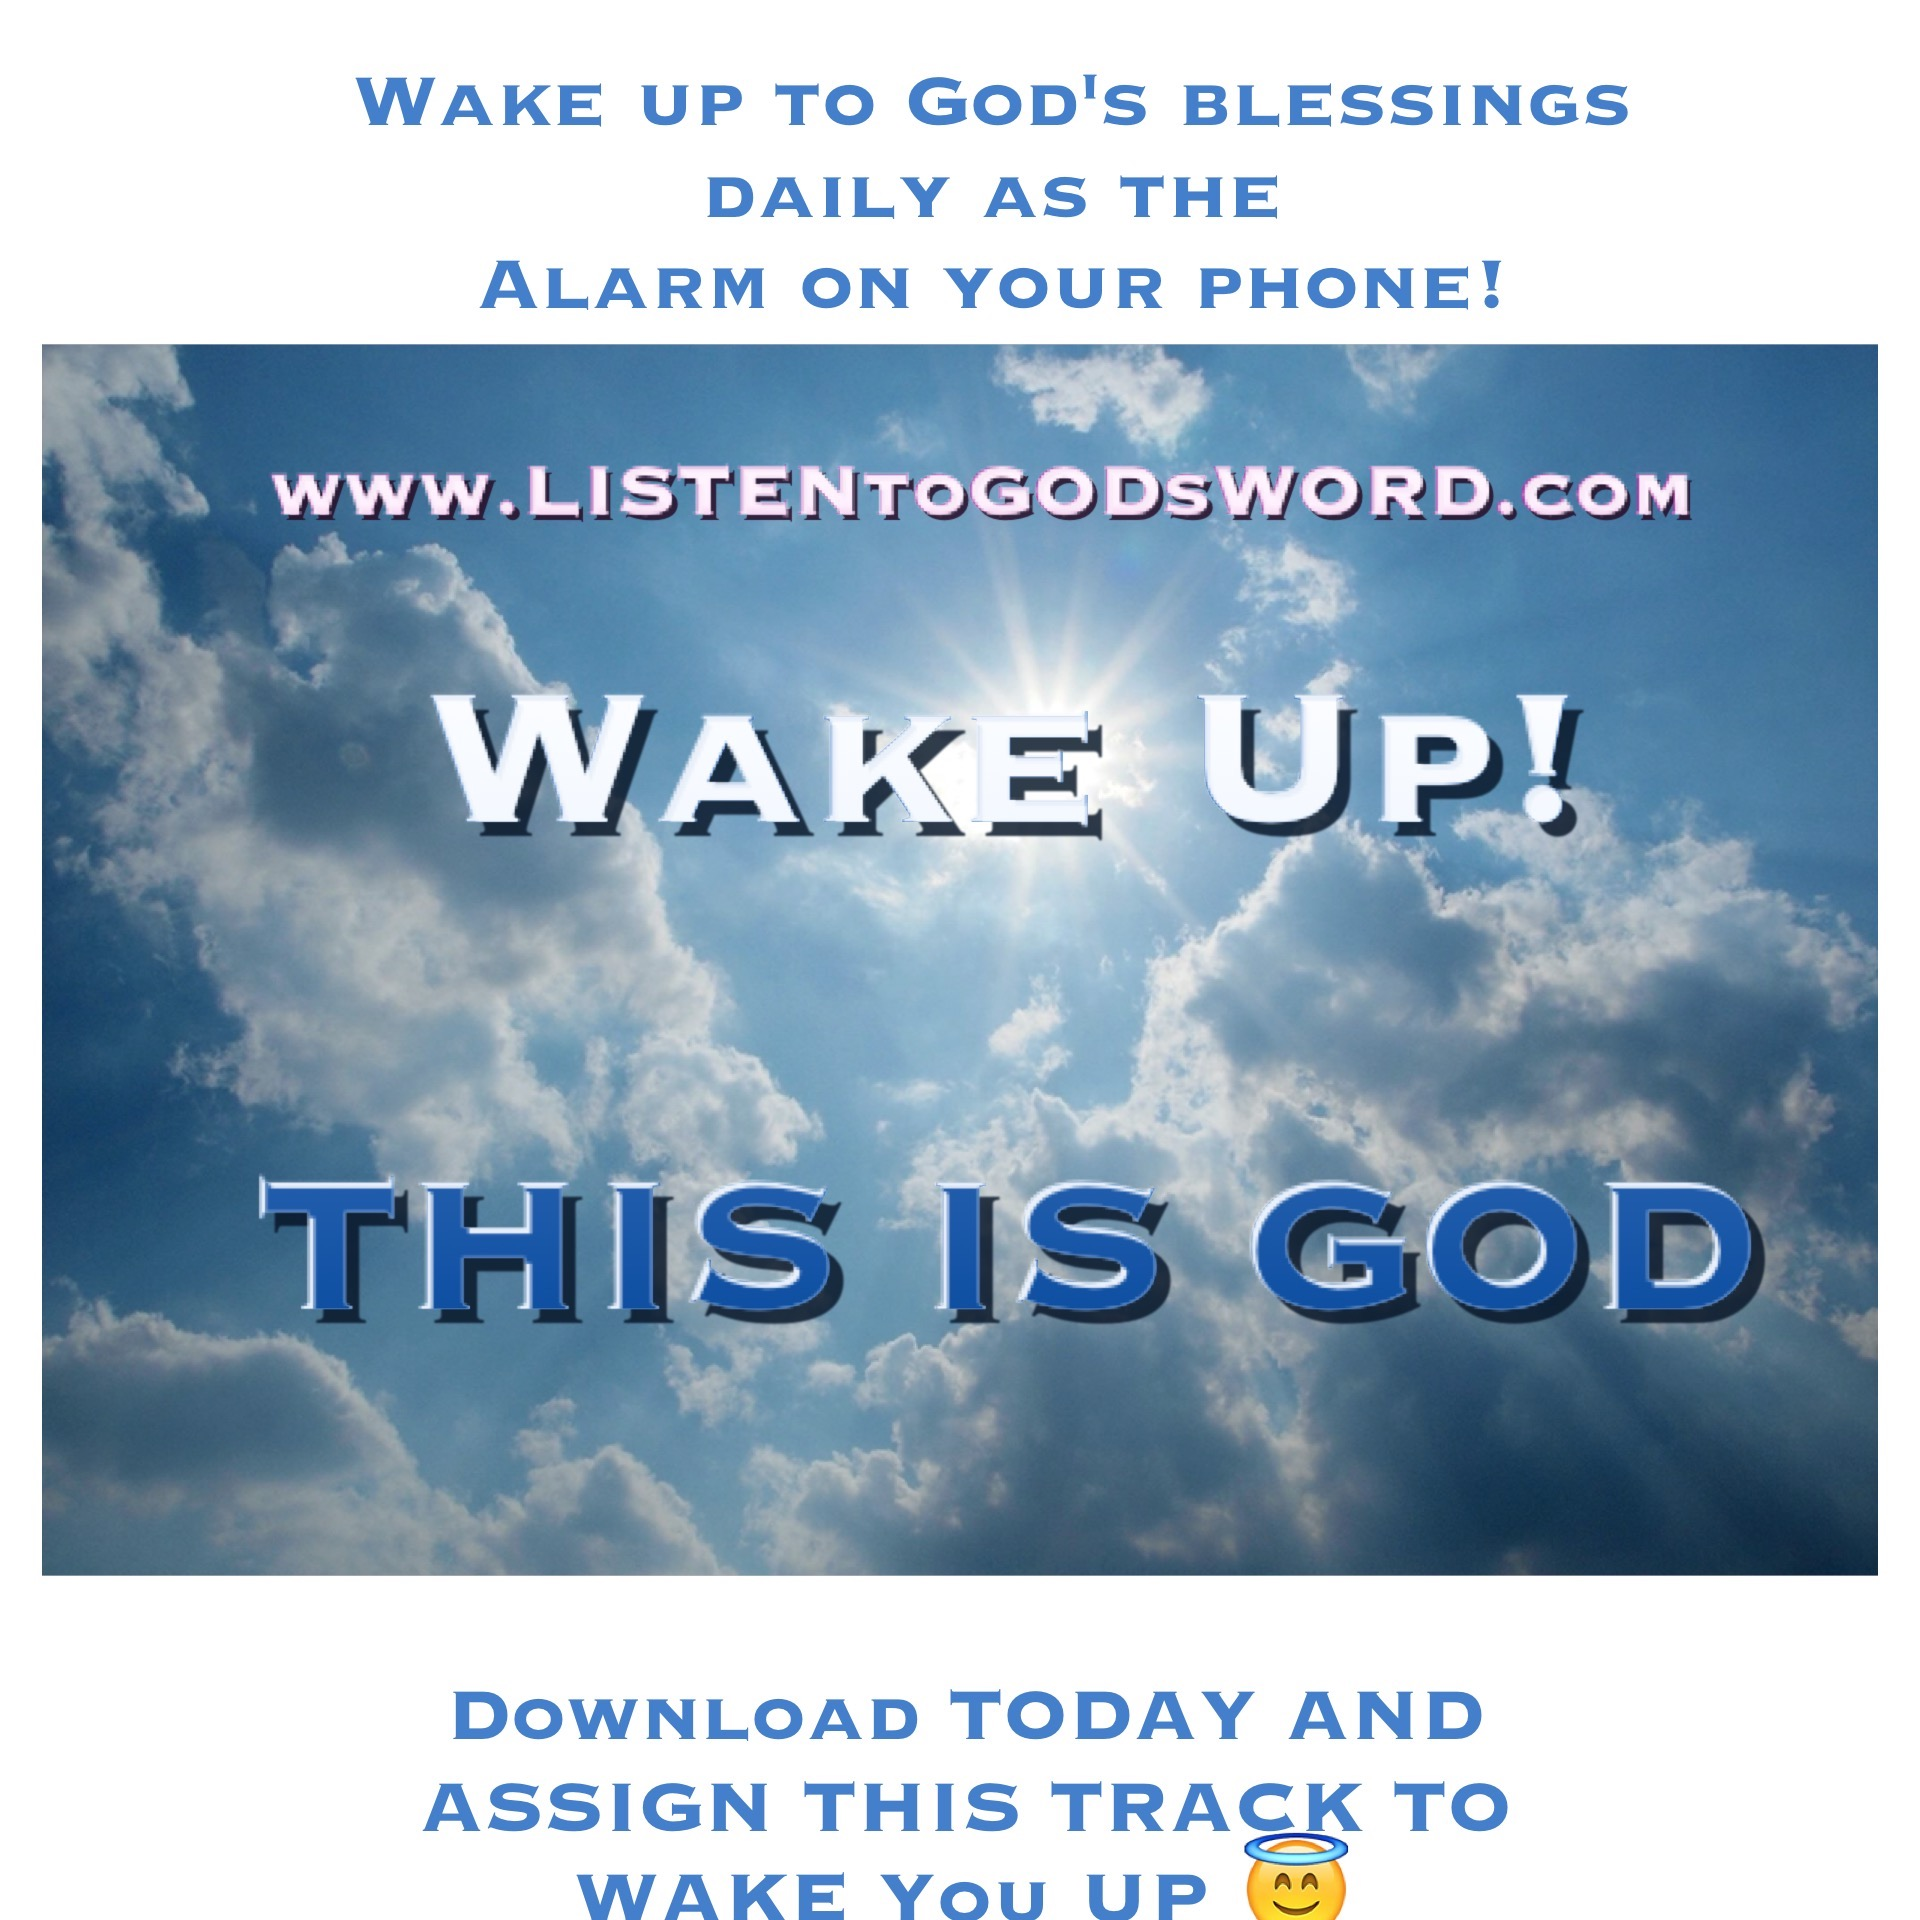 WAKE UP, This is GOD Alarm Sound Amazon Track #2